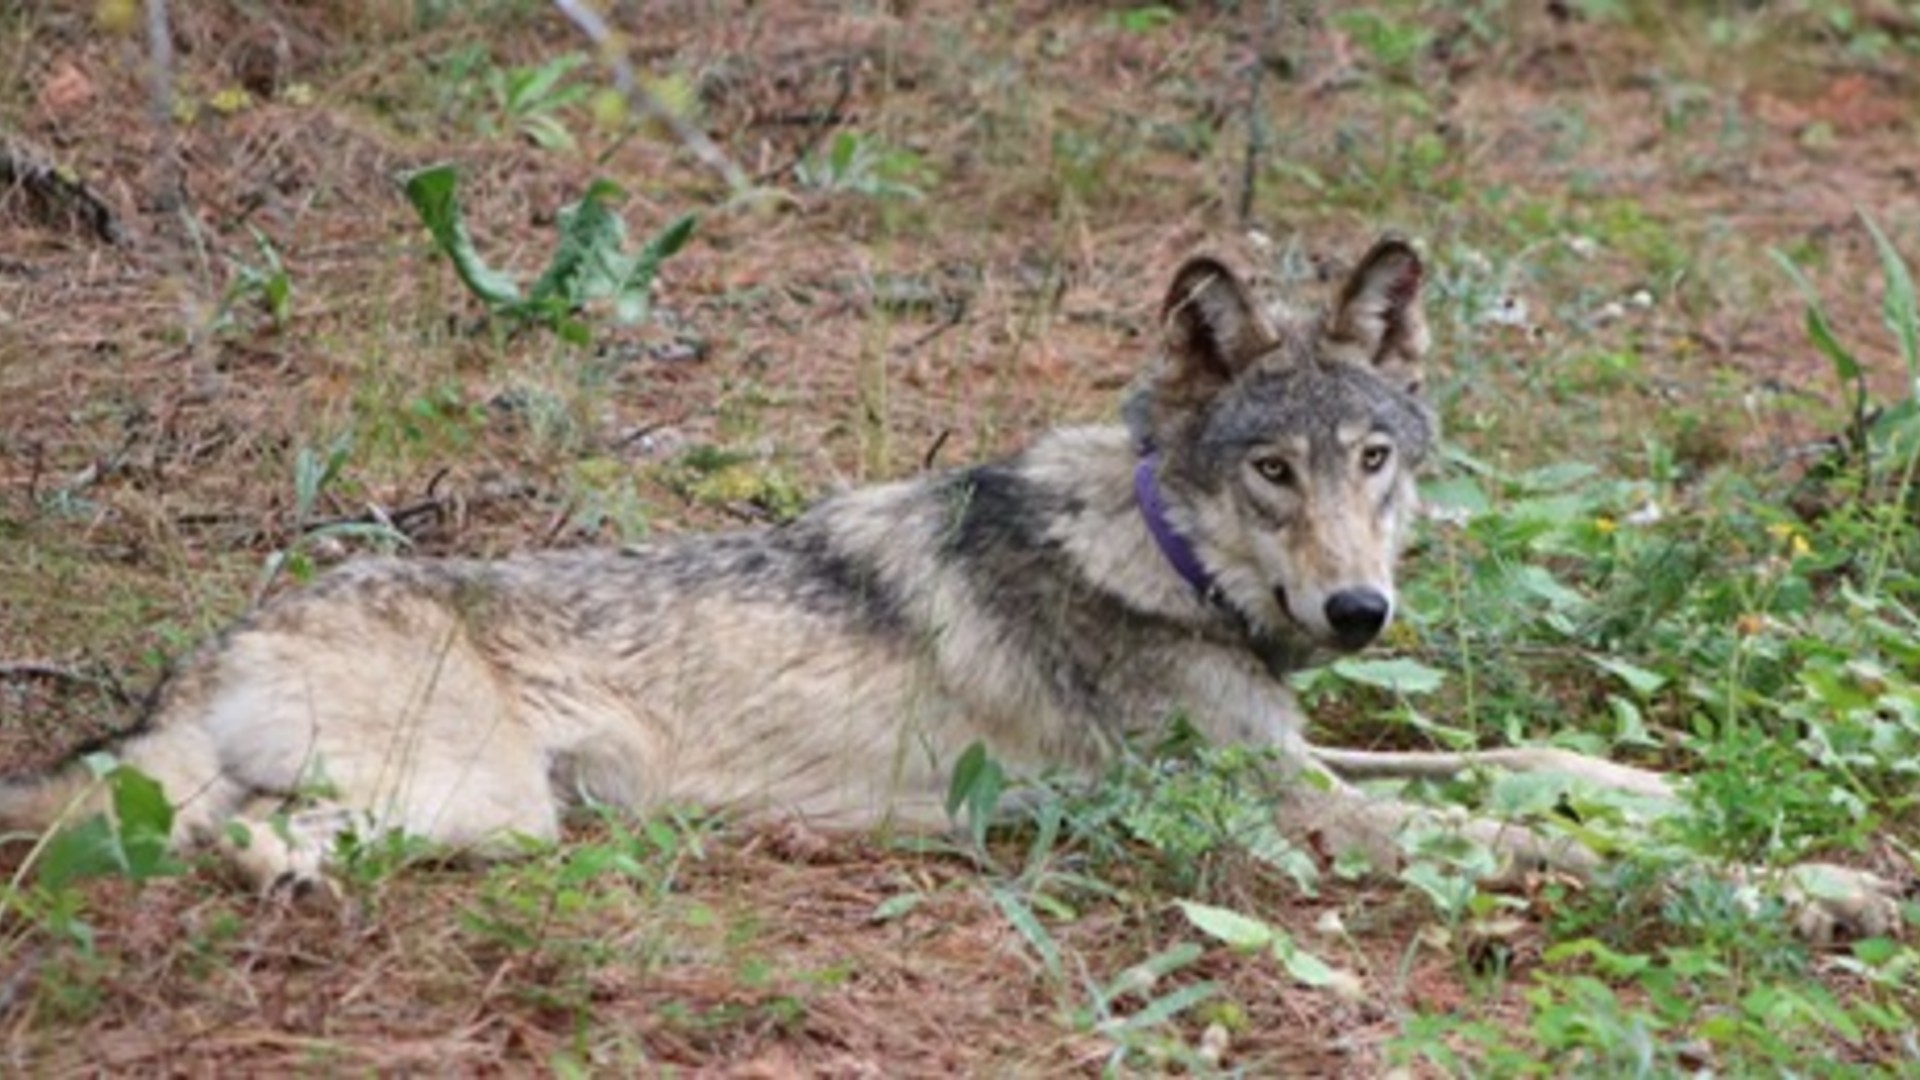 The gray wolf known as OR-93 is seen in a photo distributed by the California Department of Fish and Wildlife.